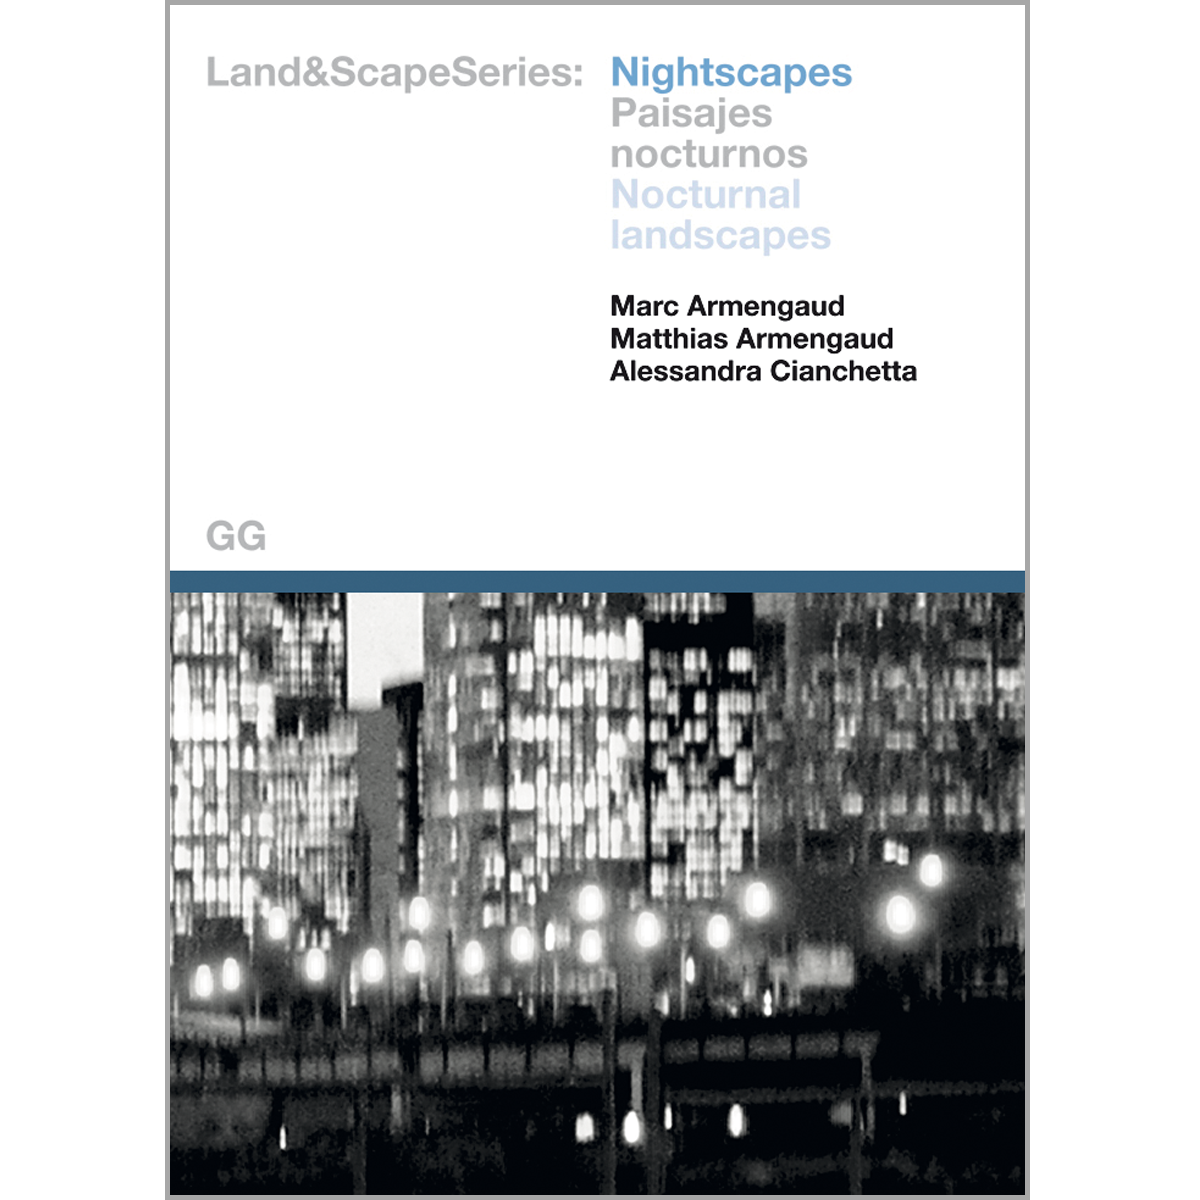 Land&ScapeSeries: Nightscapes